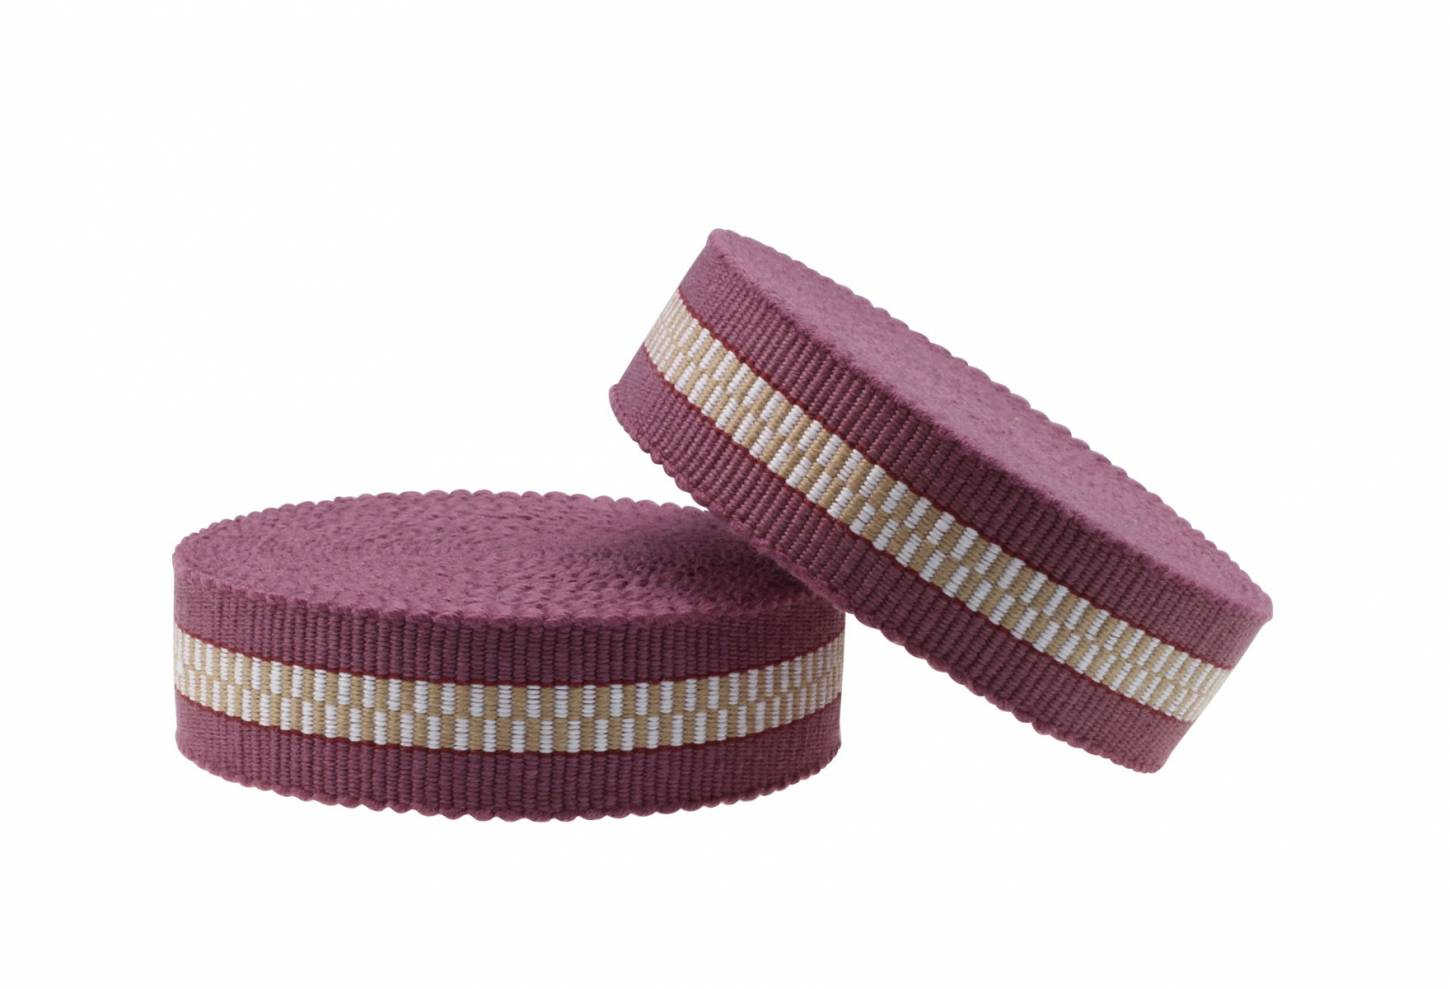 Samurai Bar Tape Lenkerband in dark pink-gold 100% Cotton Made in Japan Top Quality Unique